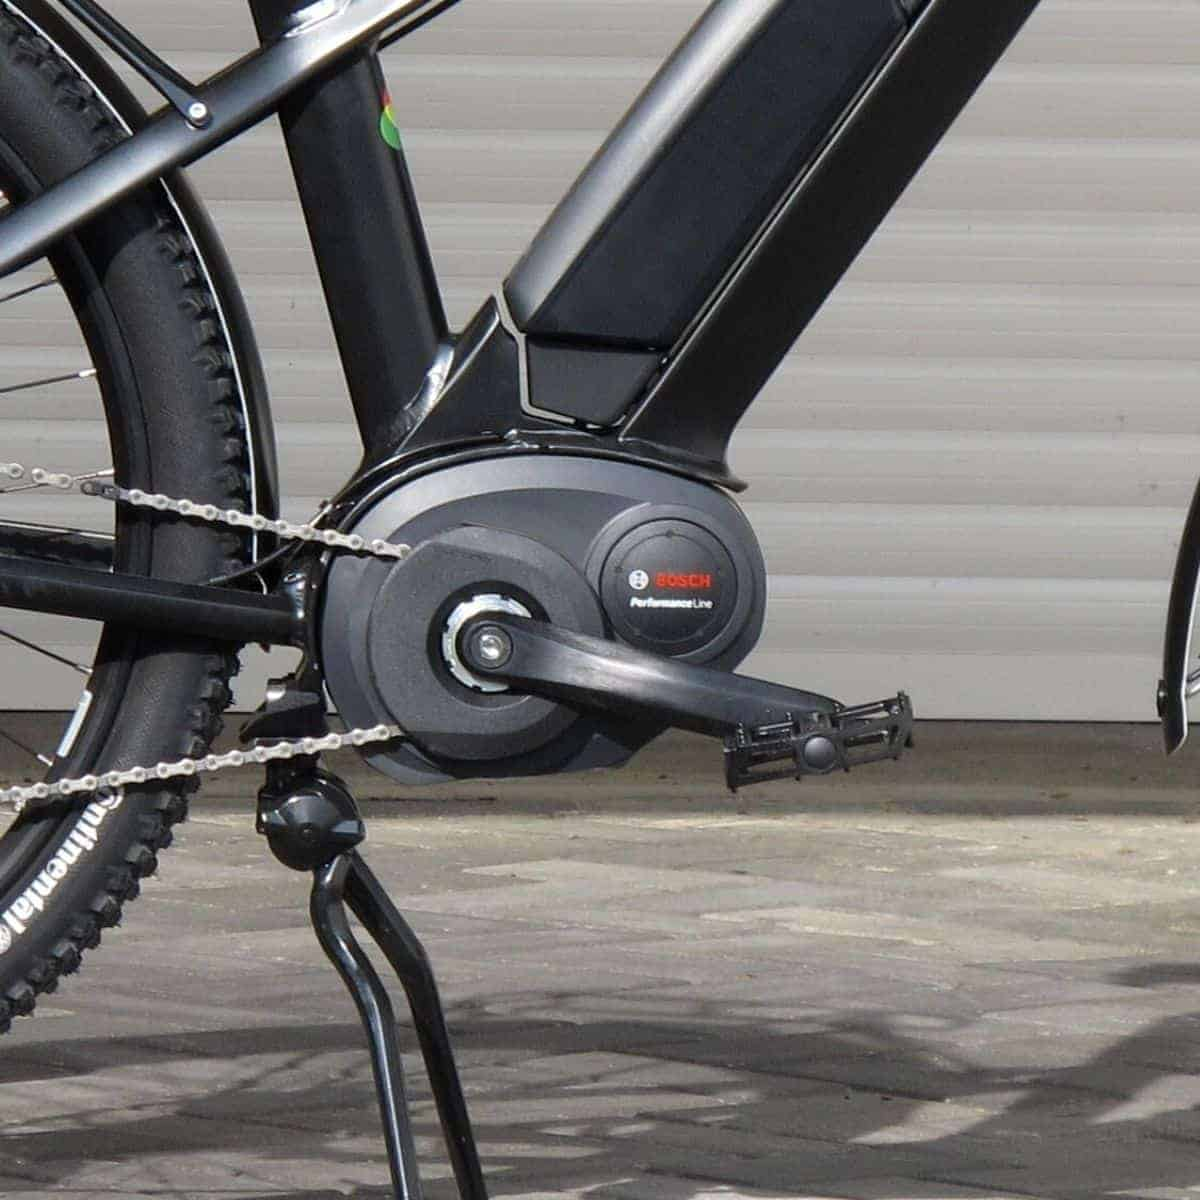 Close-up of a Bosch motor on an electric bike.